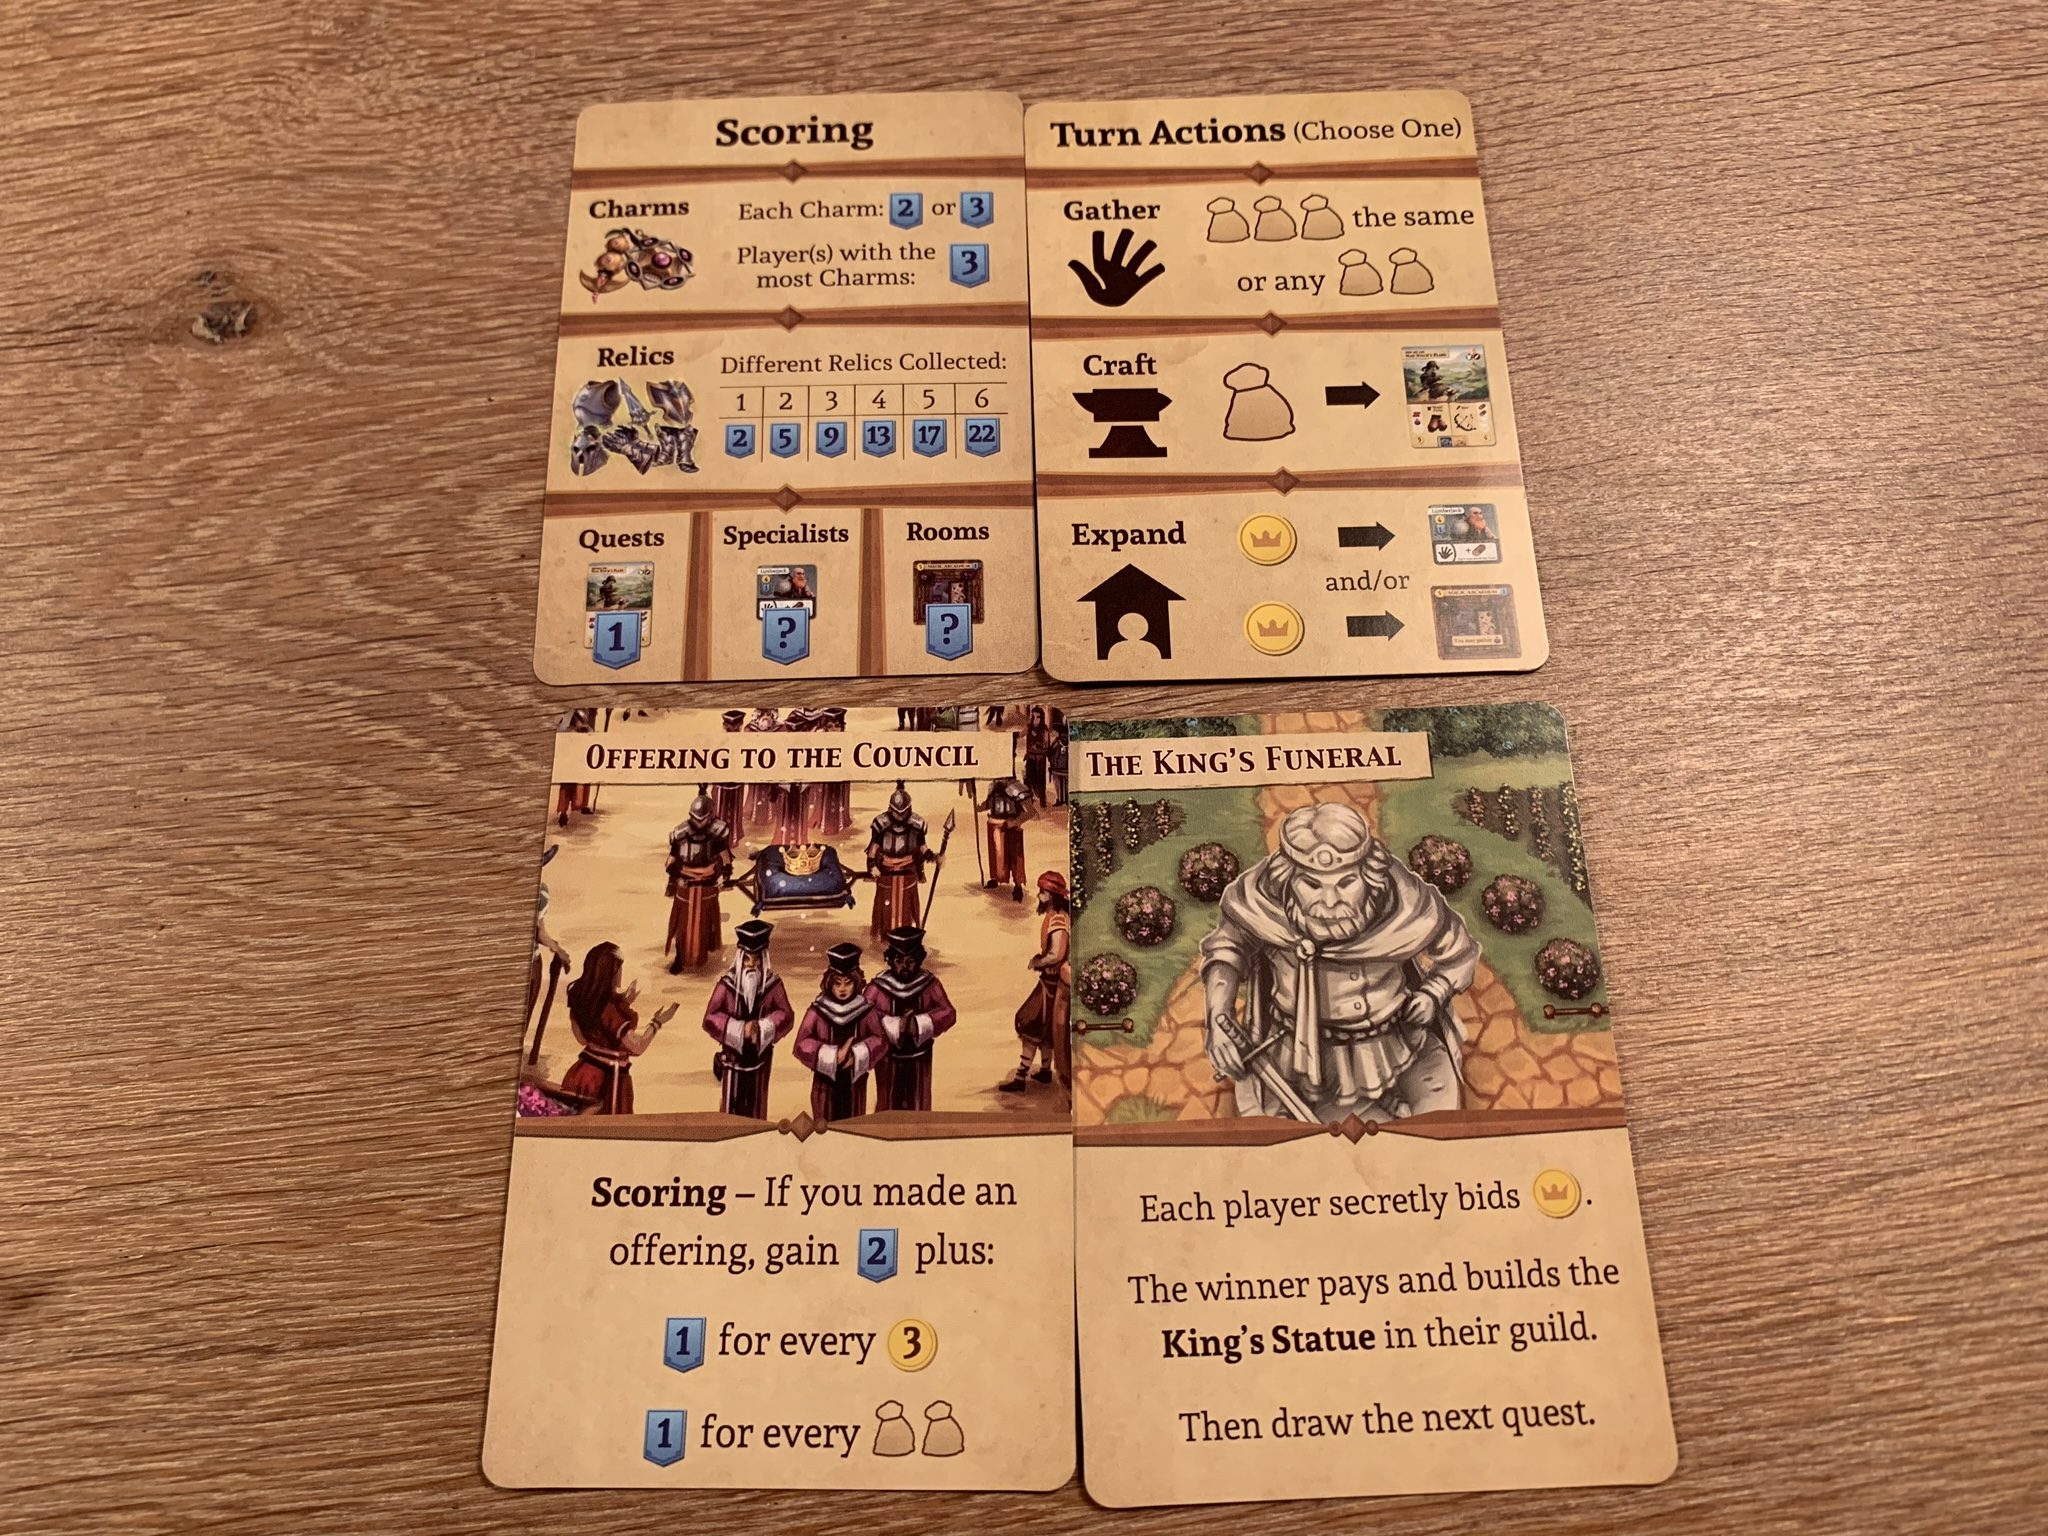 Quest cards, with the top ones being a 2 item quest